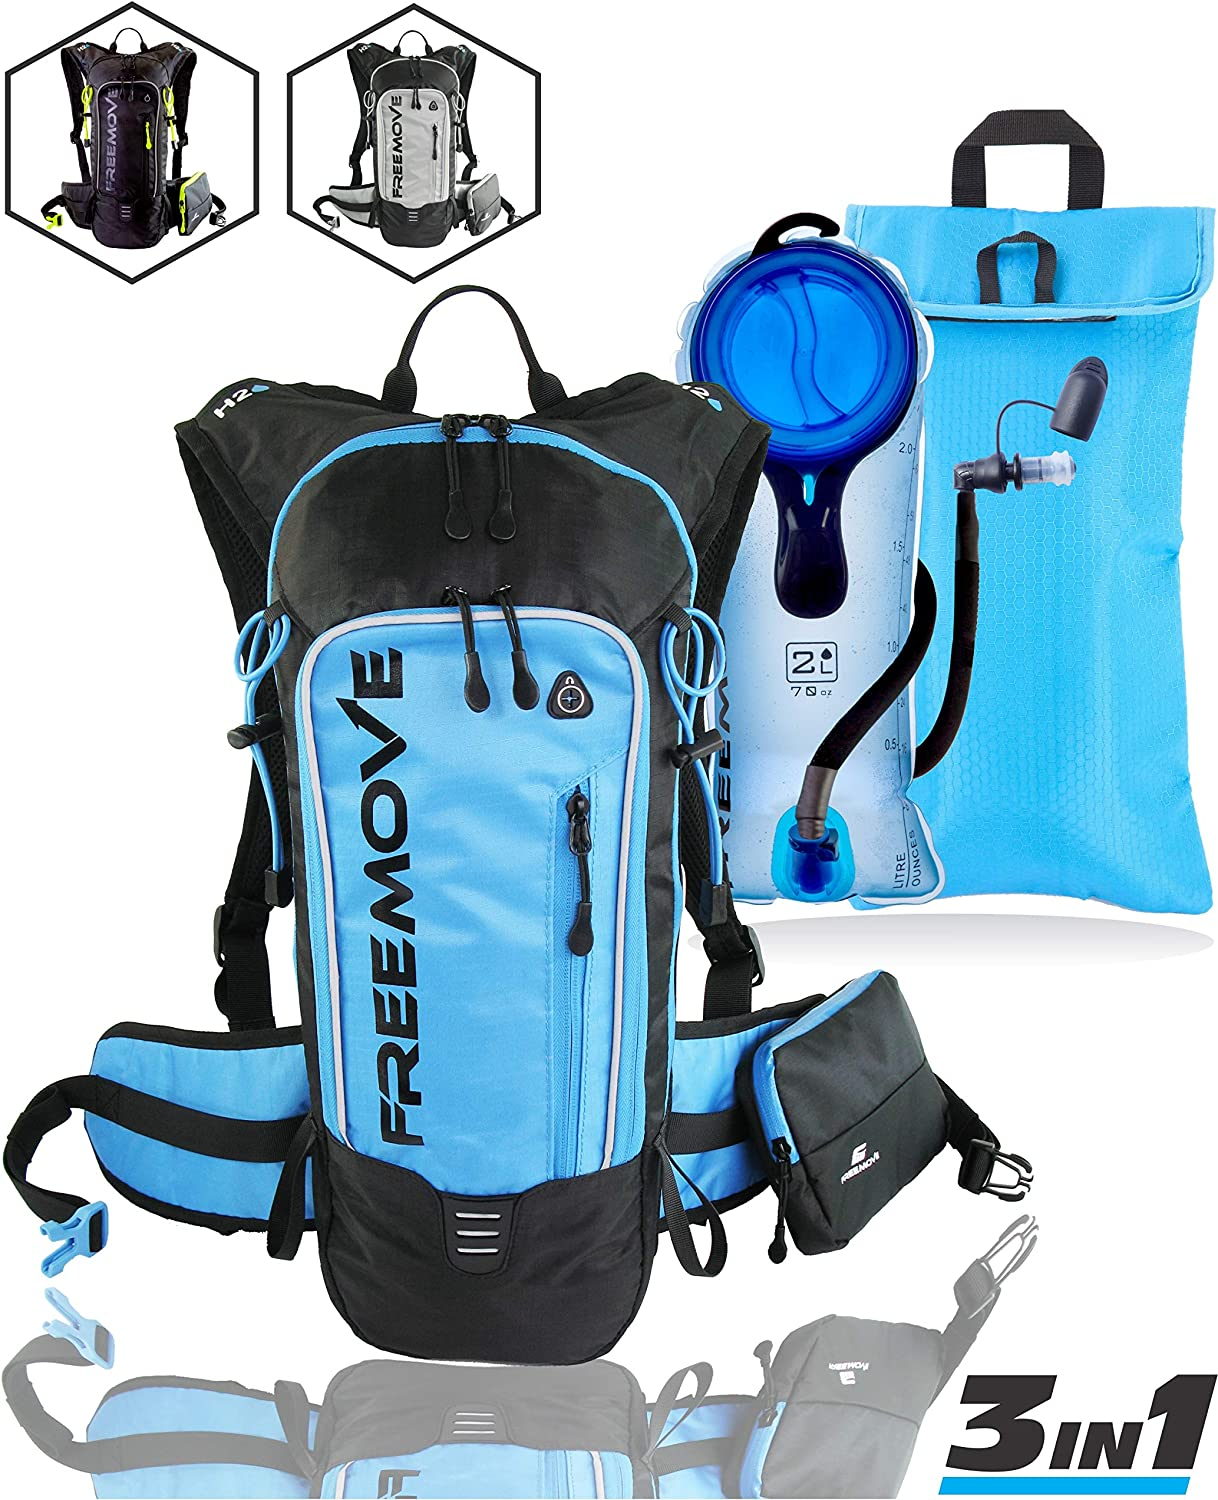 Amazon.com : FREEMOVE Hydration Pack Backpack with 2 Liter Water Bladder  and Cooler Bag, Lightweight, Fully Adjustable, Leakproof Multiple Pockets  Camel Pack Gear for Hiking, Running, Cycling, Skiing : Sports & Outdoors